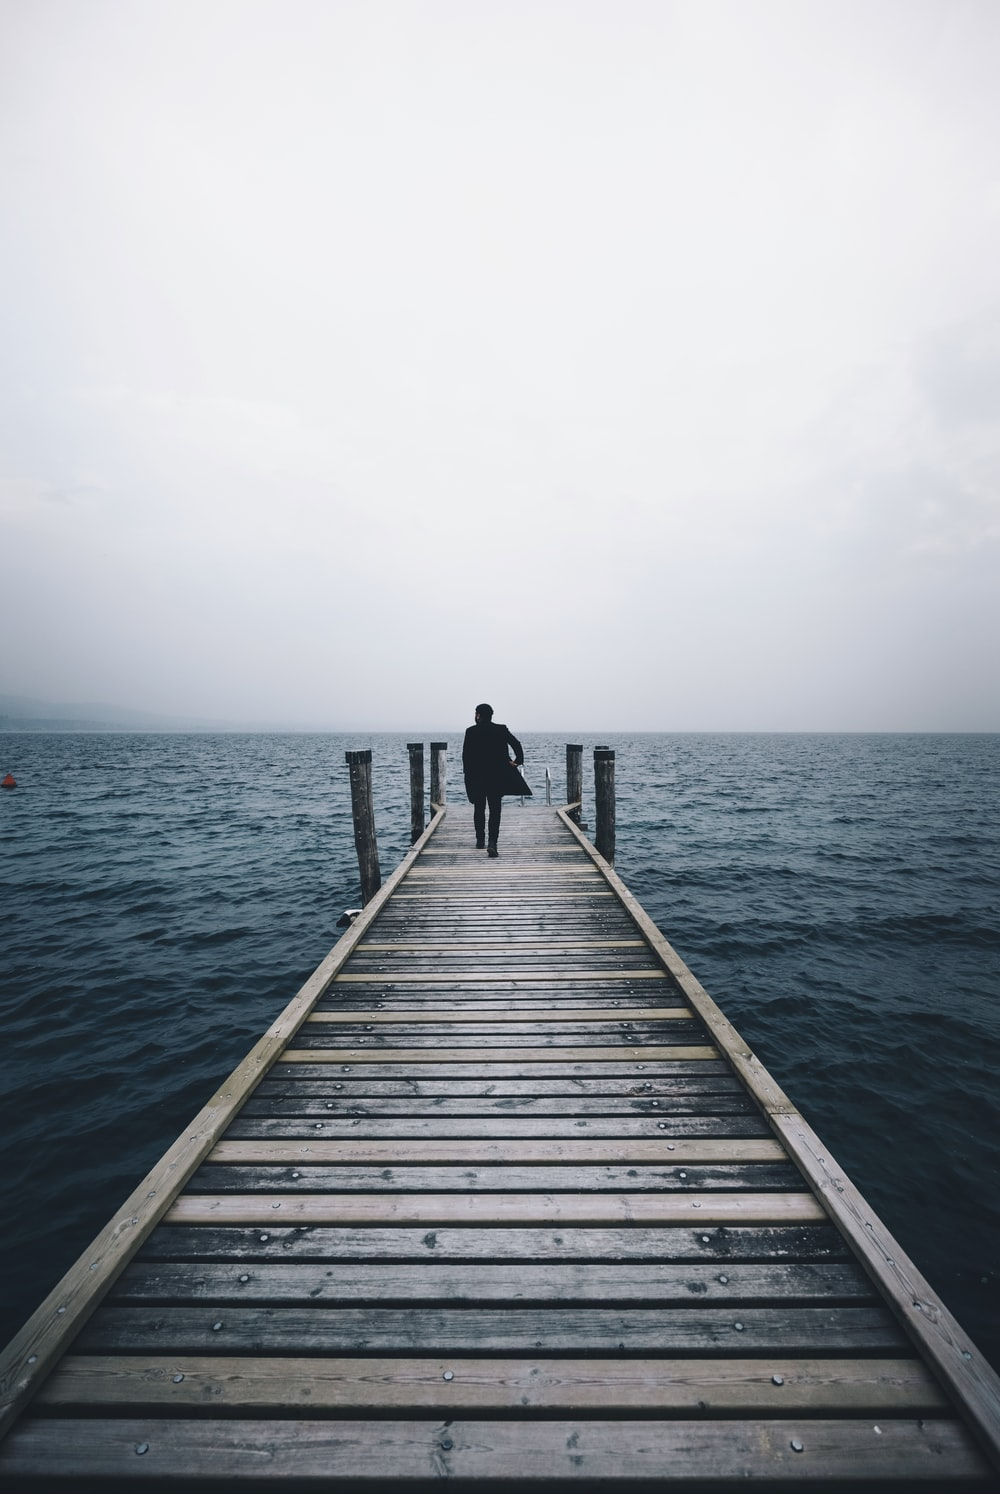 man walking on dock surrounded by ocean during daytime